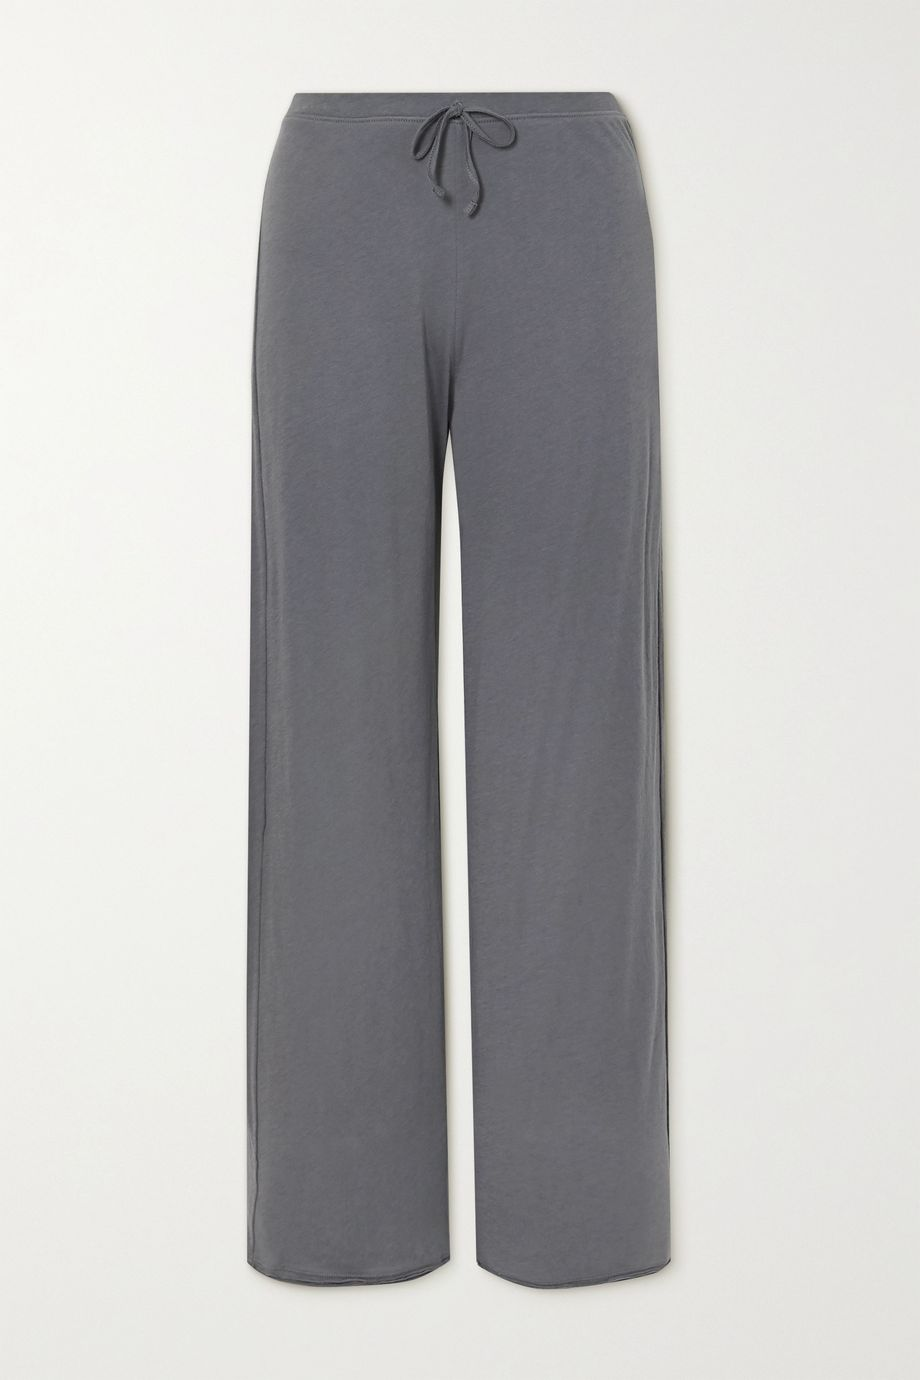 Skin Guinevere organic Pima cotton-jersey pants